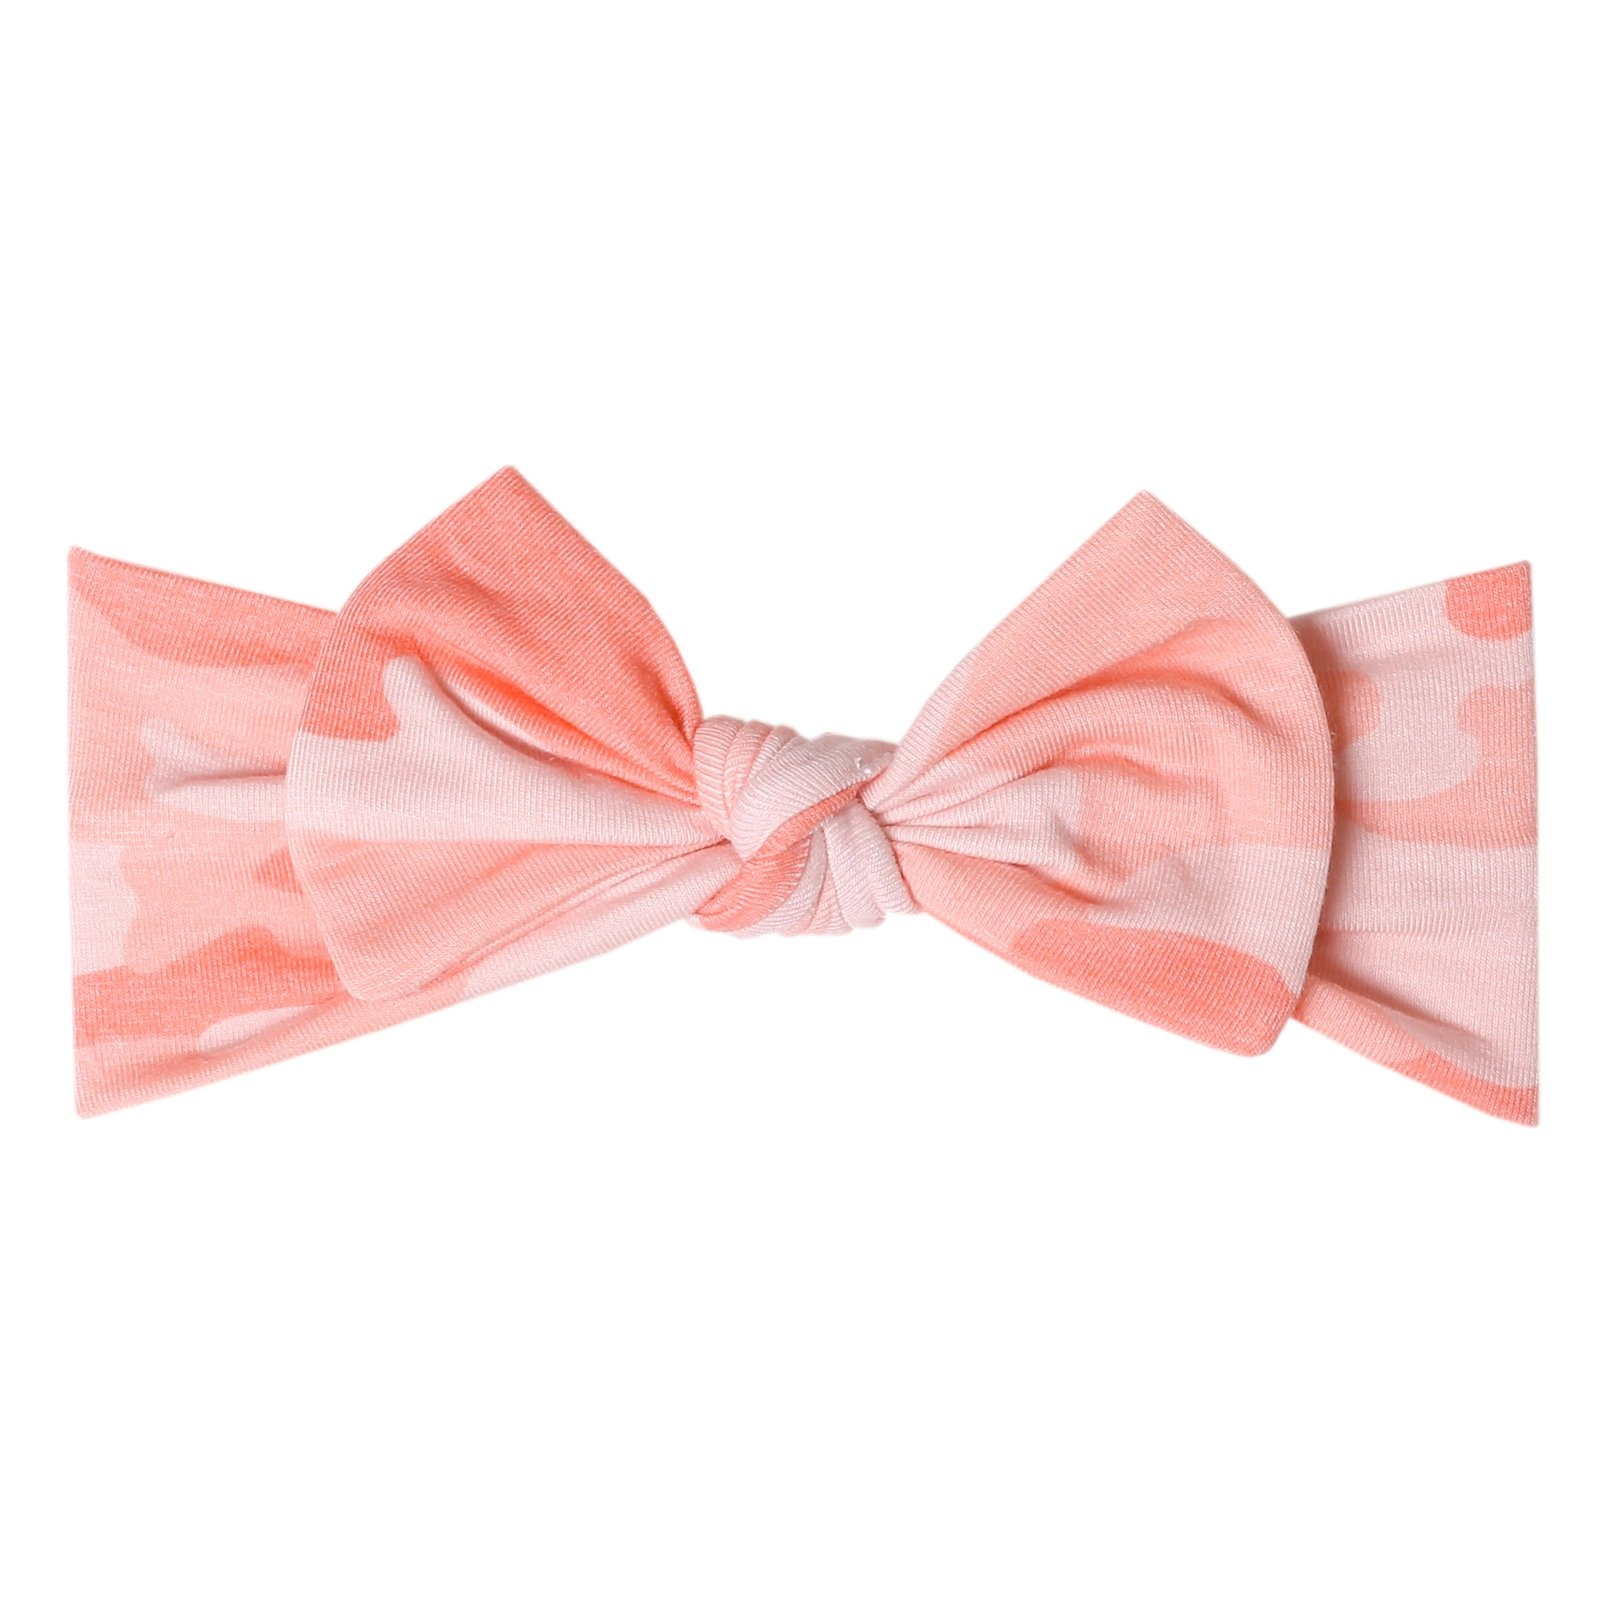 Copper Pearl Copper Pearl - Knit Headband Bow - Remi